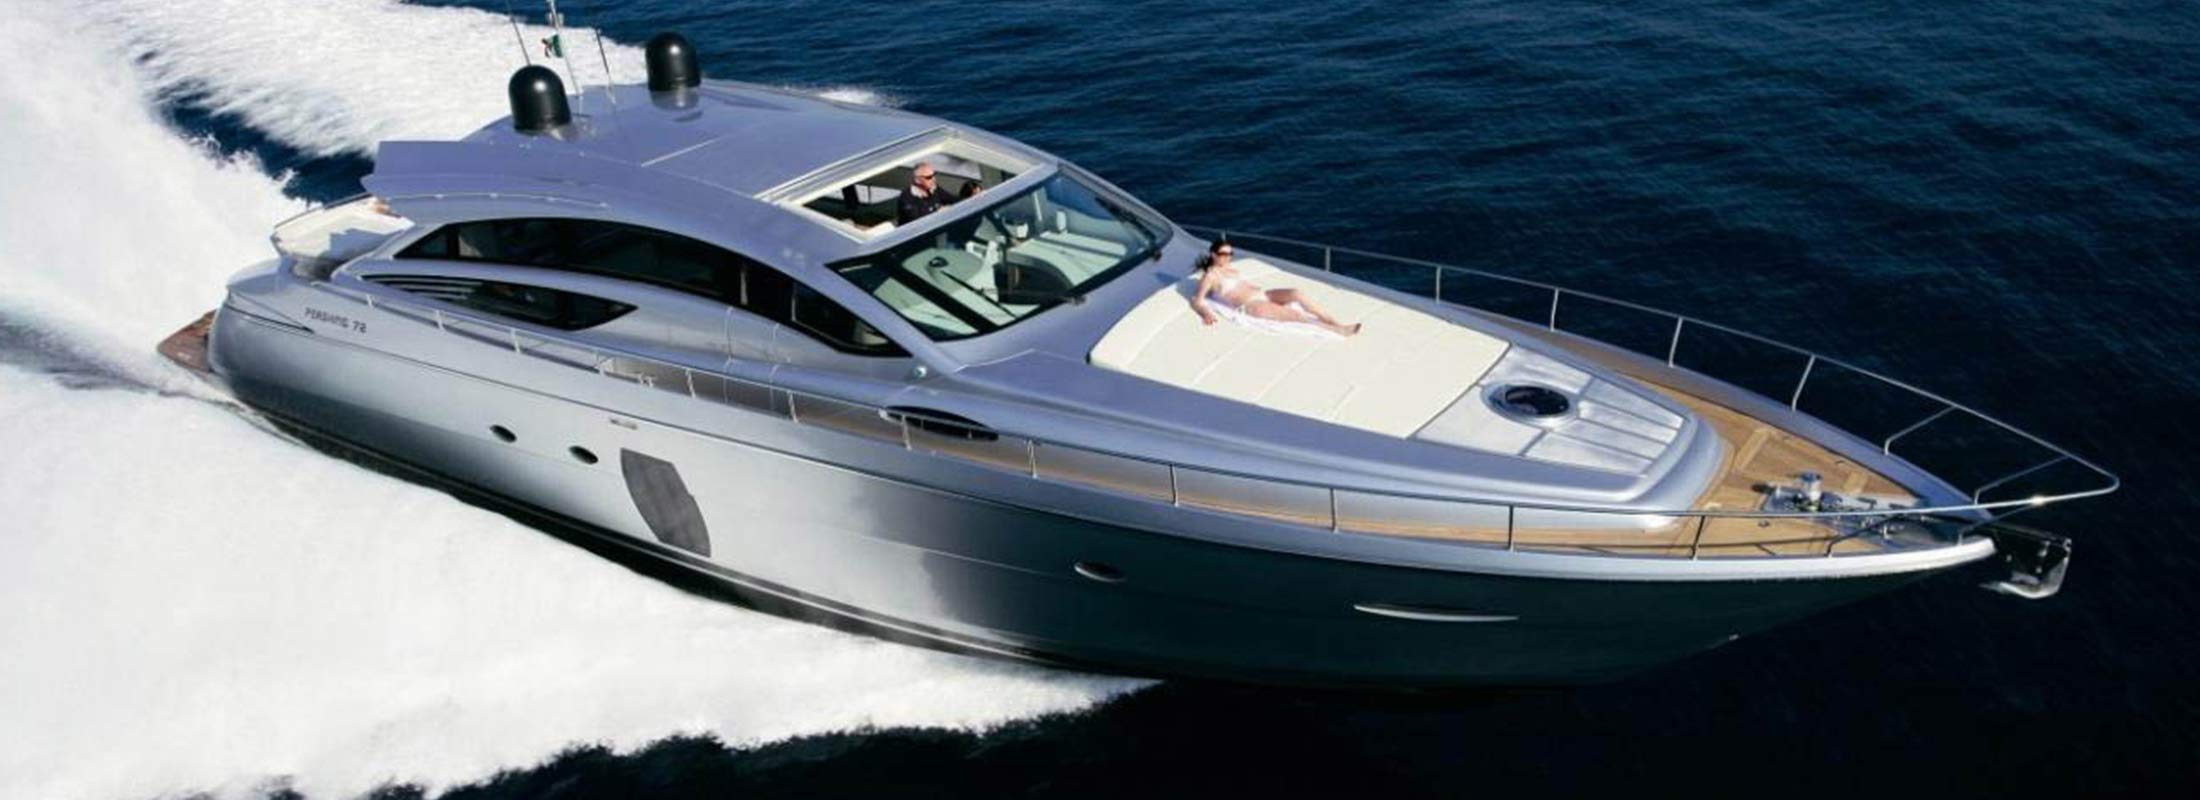 Angels Demons Motor Yacht for Charter Mediterranean slider 1